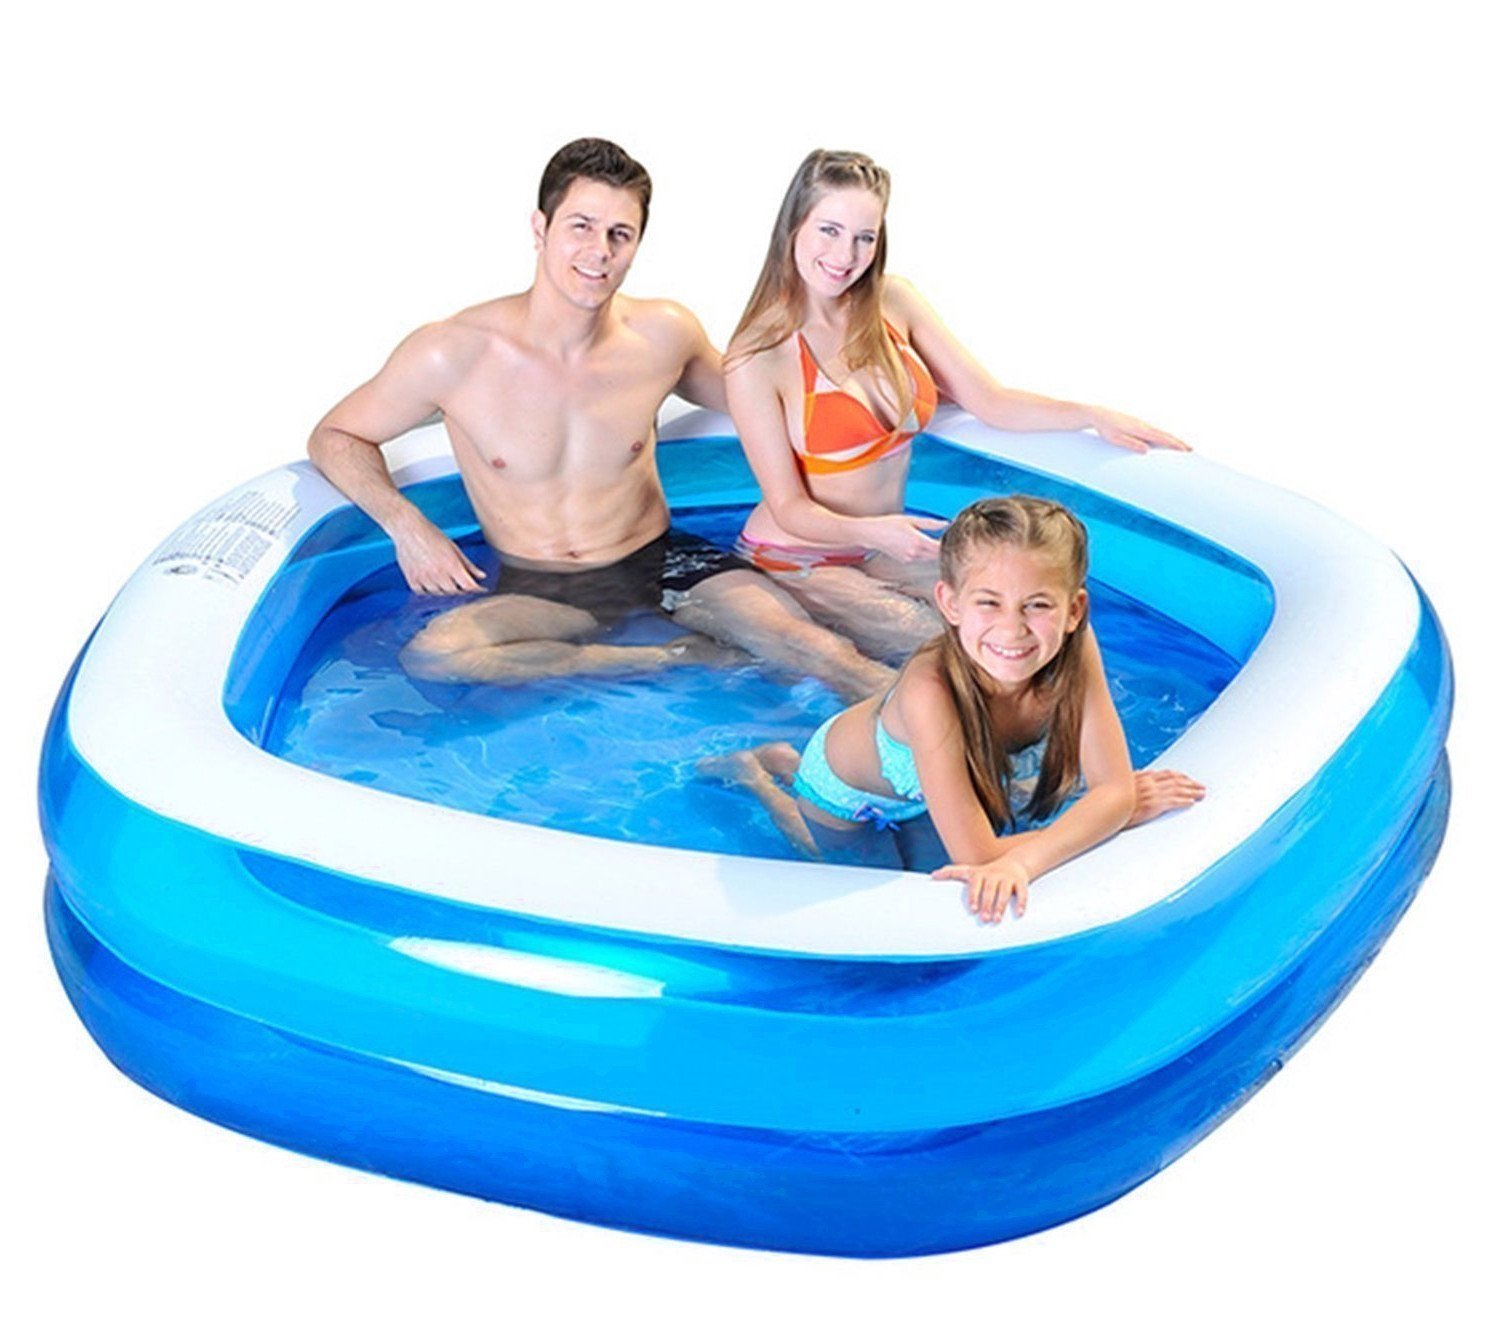 jnwd Inflatable Kiddie Pool Summer Outdoor Family Patio Water Fun Small Backyard Garden Swimming Center & e-Book by jn.Widetrade. by jnwd